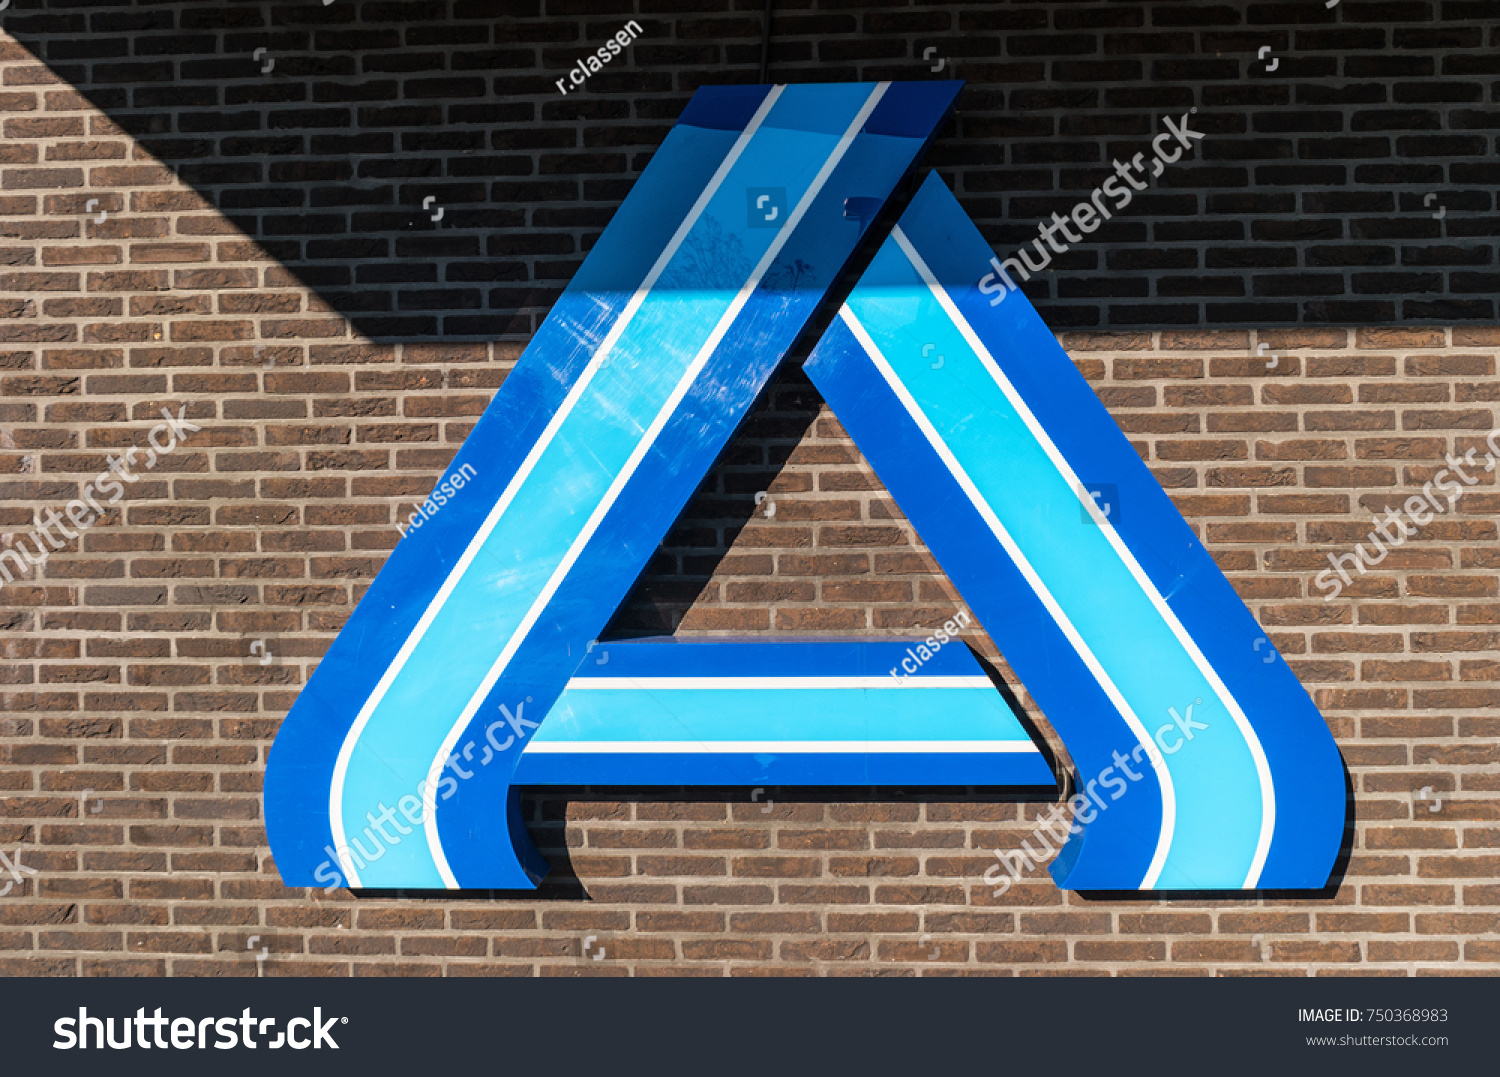 Aldi stock symbol choice image symbol and sign ideas aldi stock symbol choice image symbol and sign ideas aldi stock symbol images symbol and sign buycottarizona